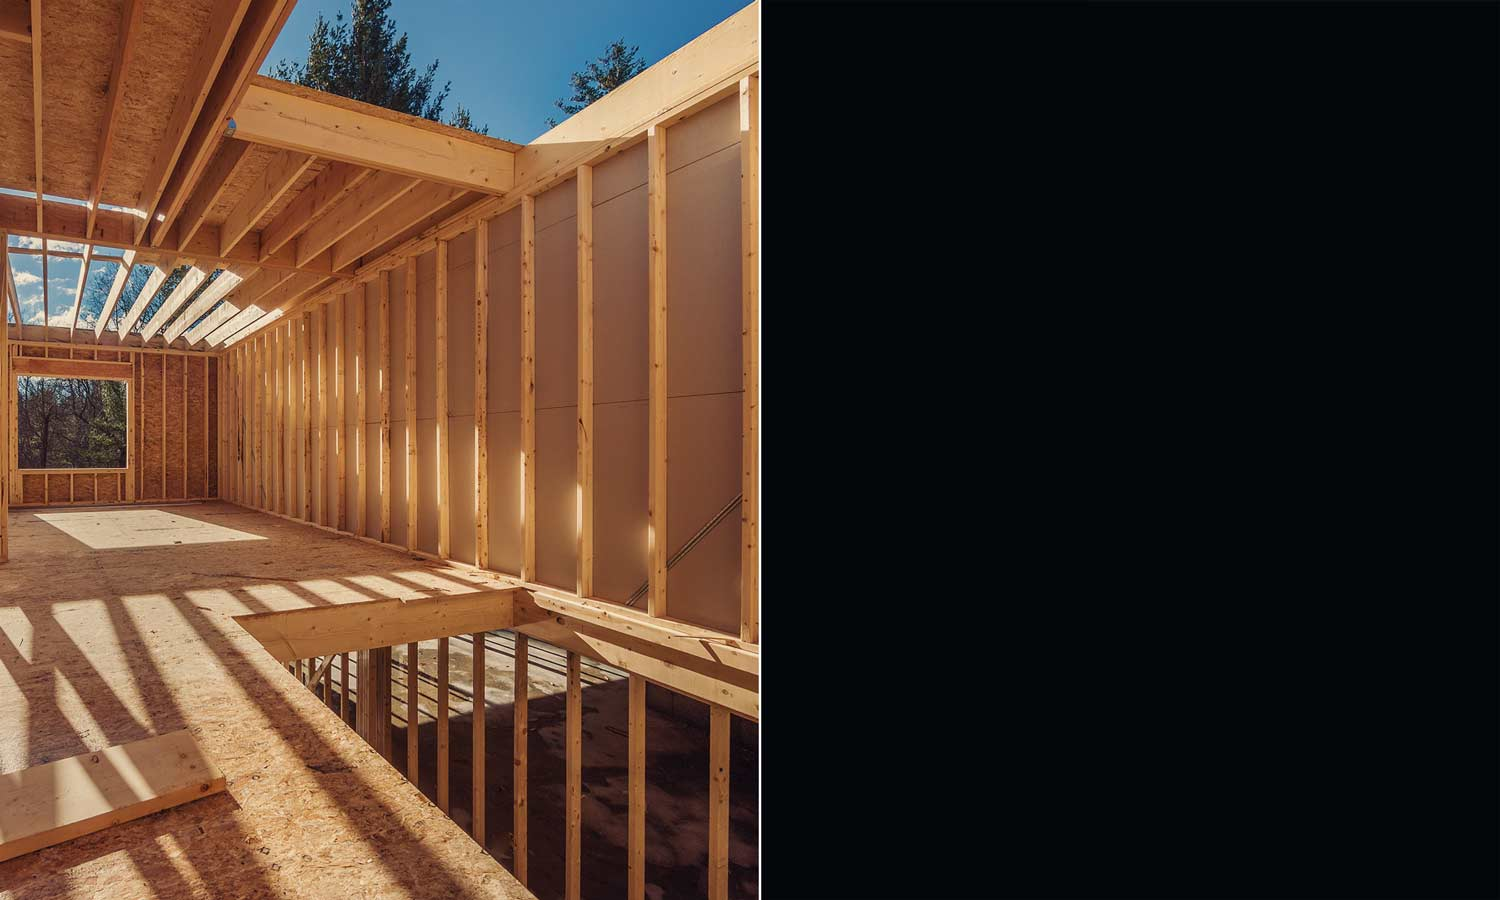 Home Products Roof Trusses Floor Joists Prefabricated Wall Panels